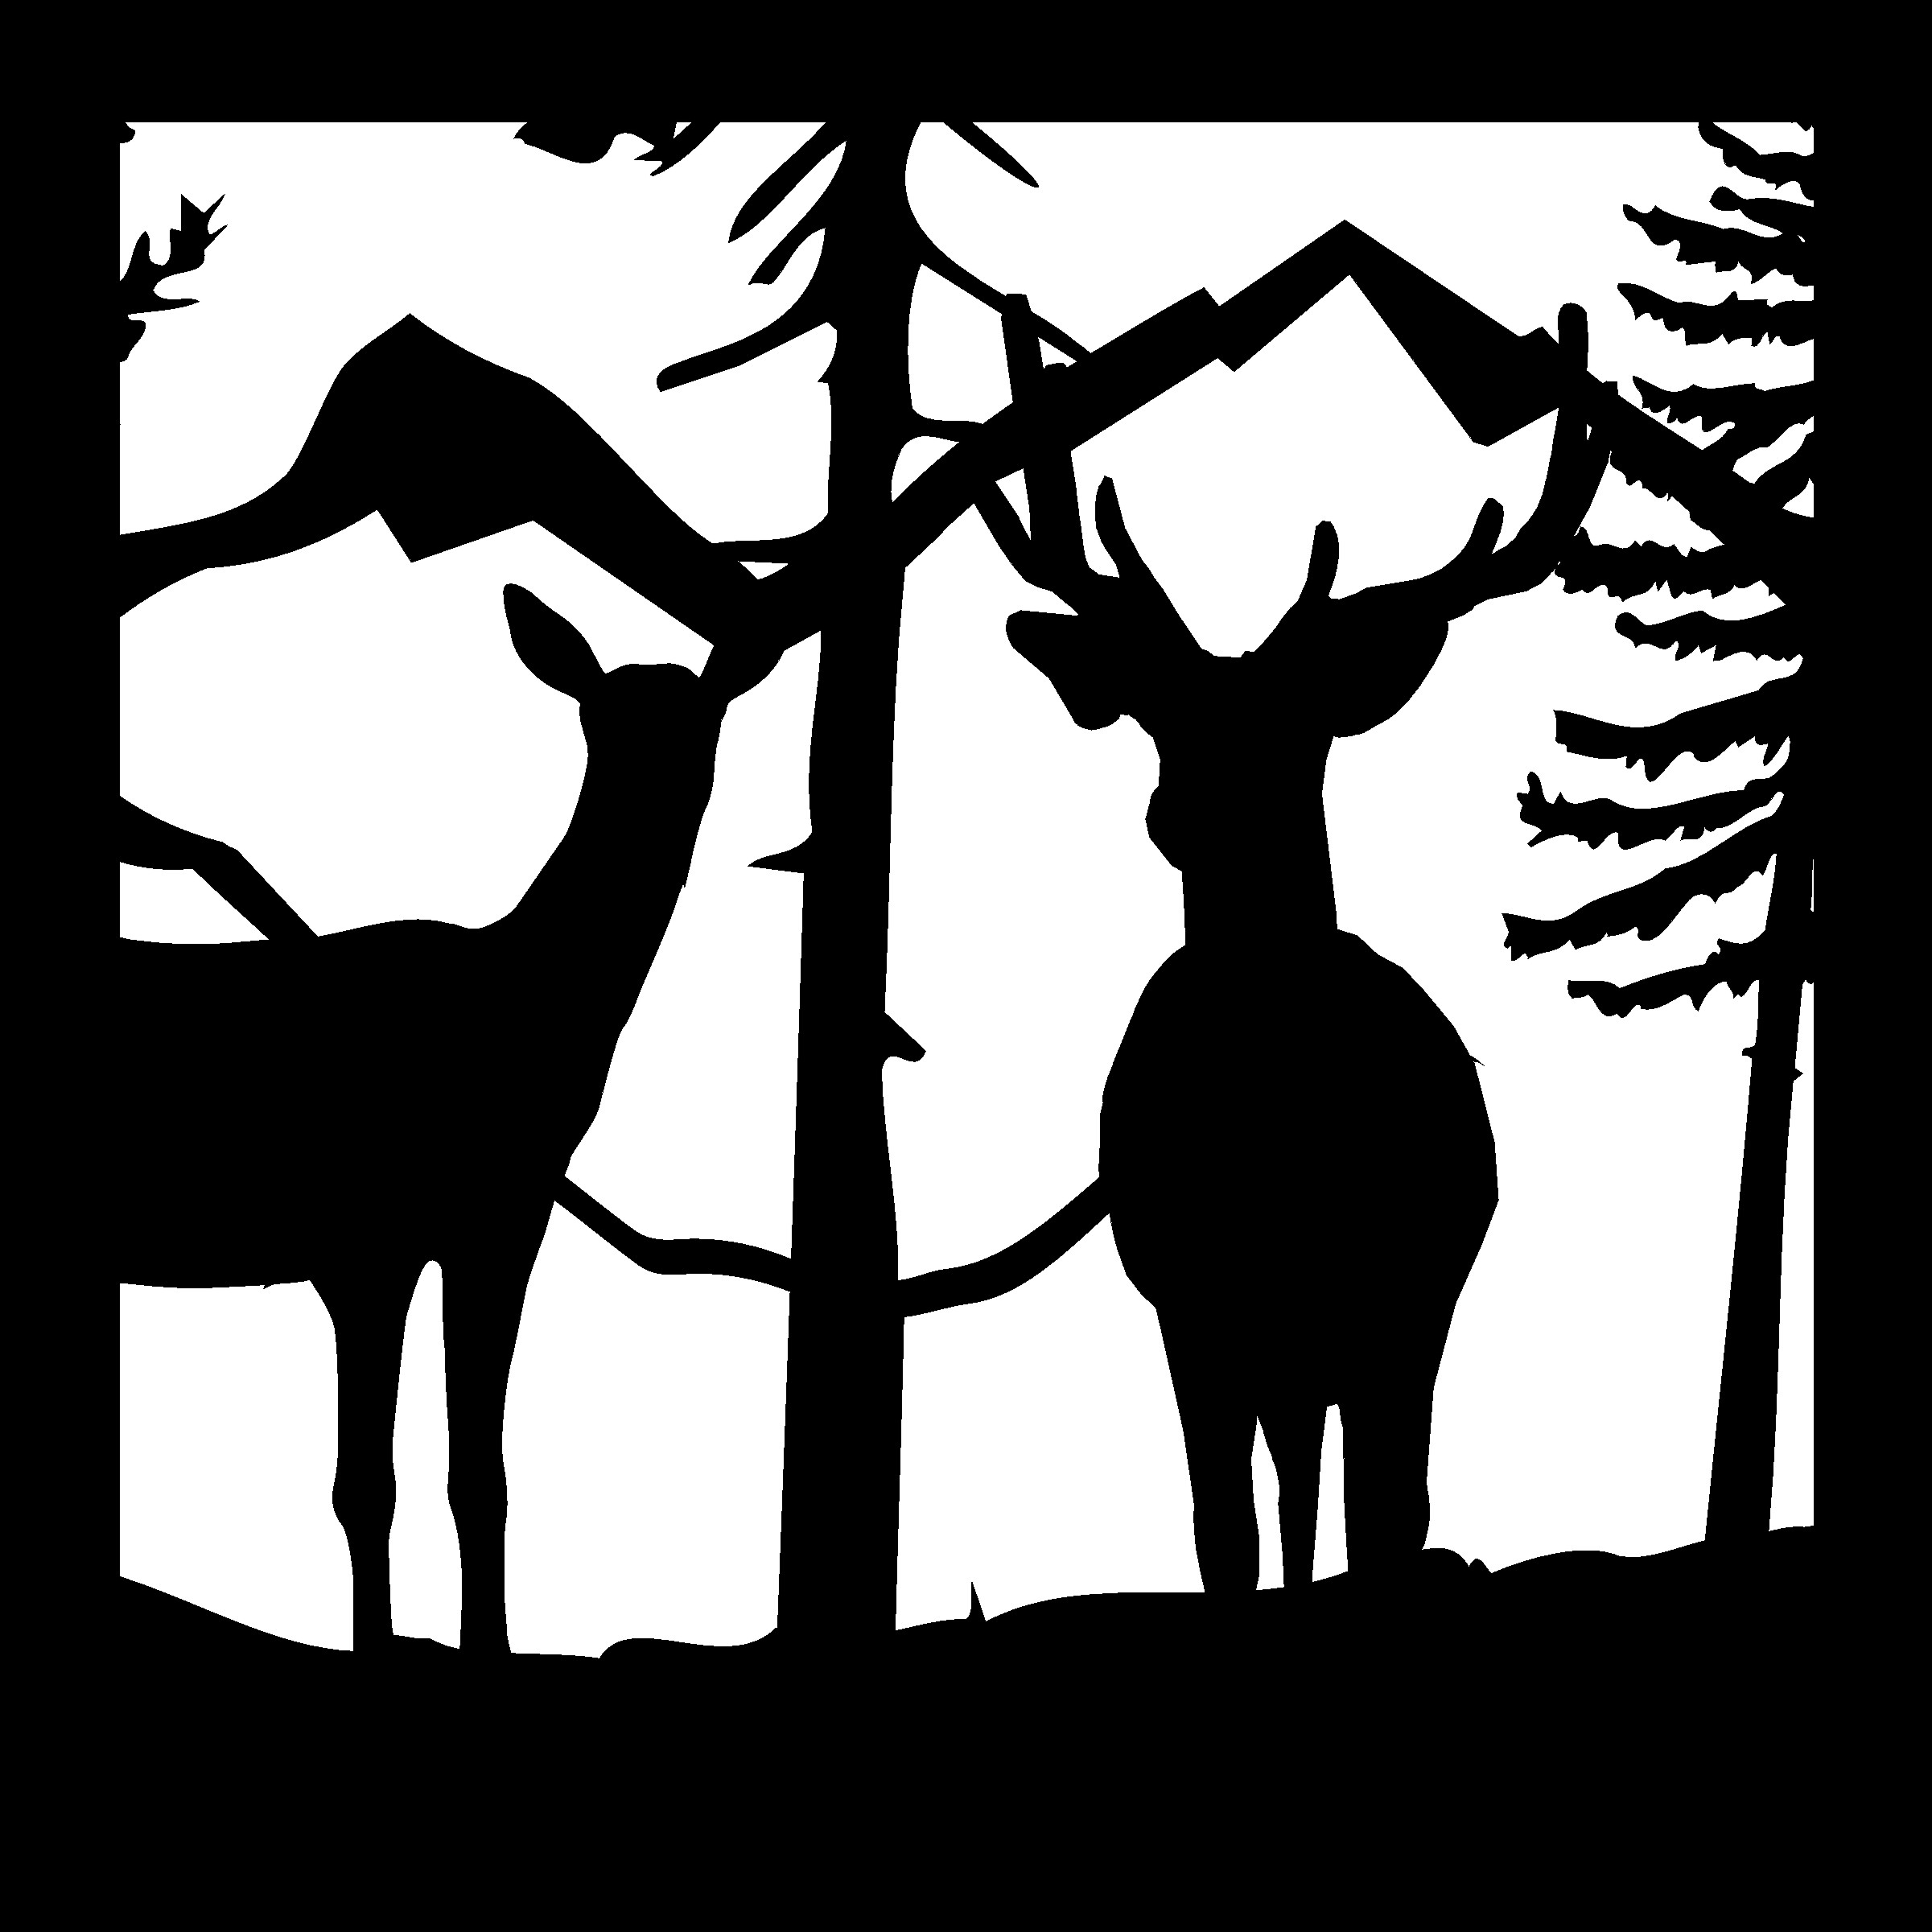 24 X 24 Buck Doe Mountains Ready Plasma Cut DXF File